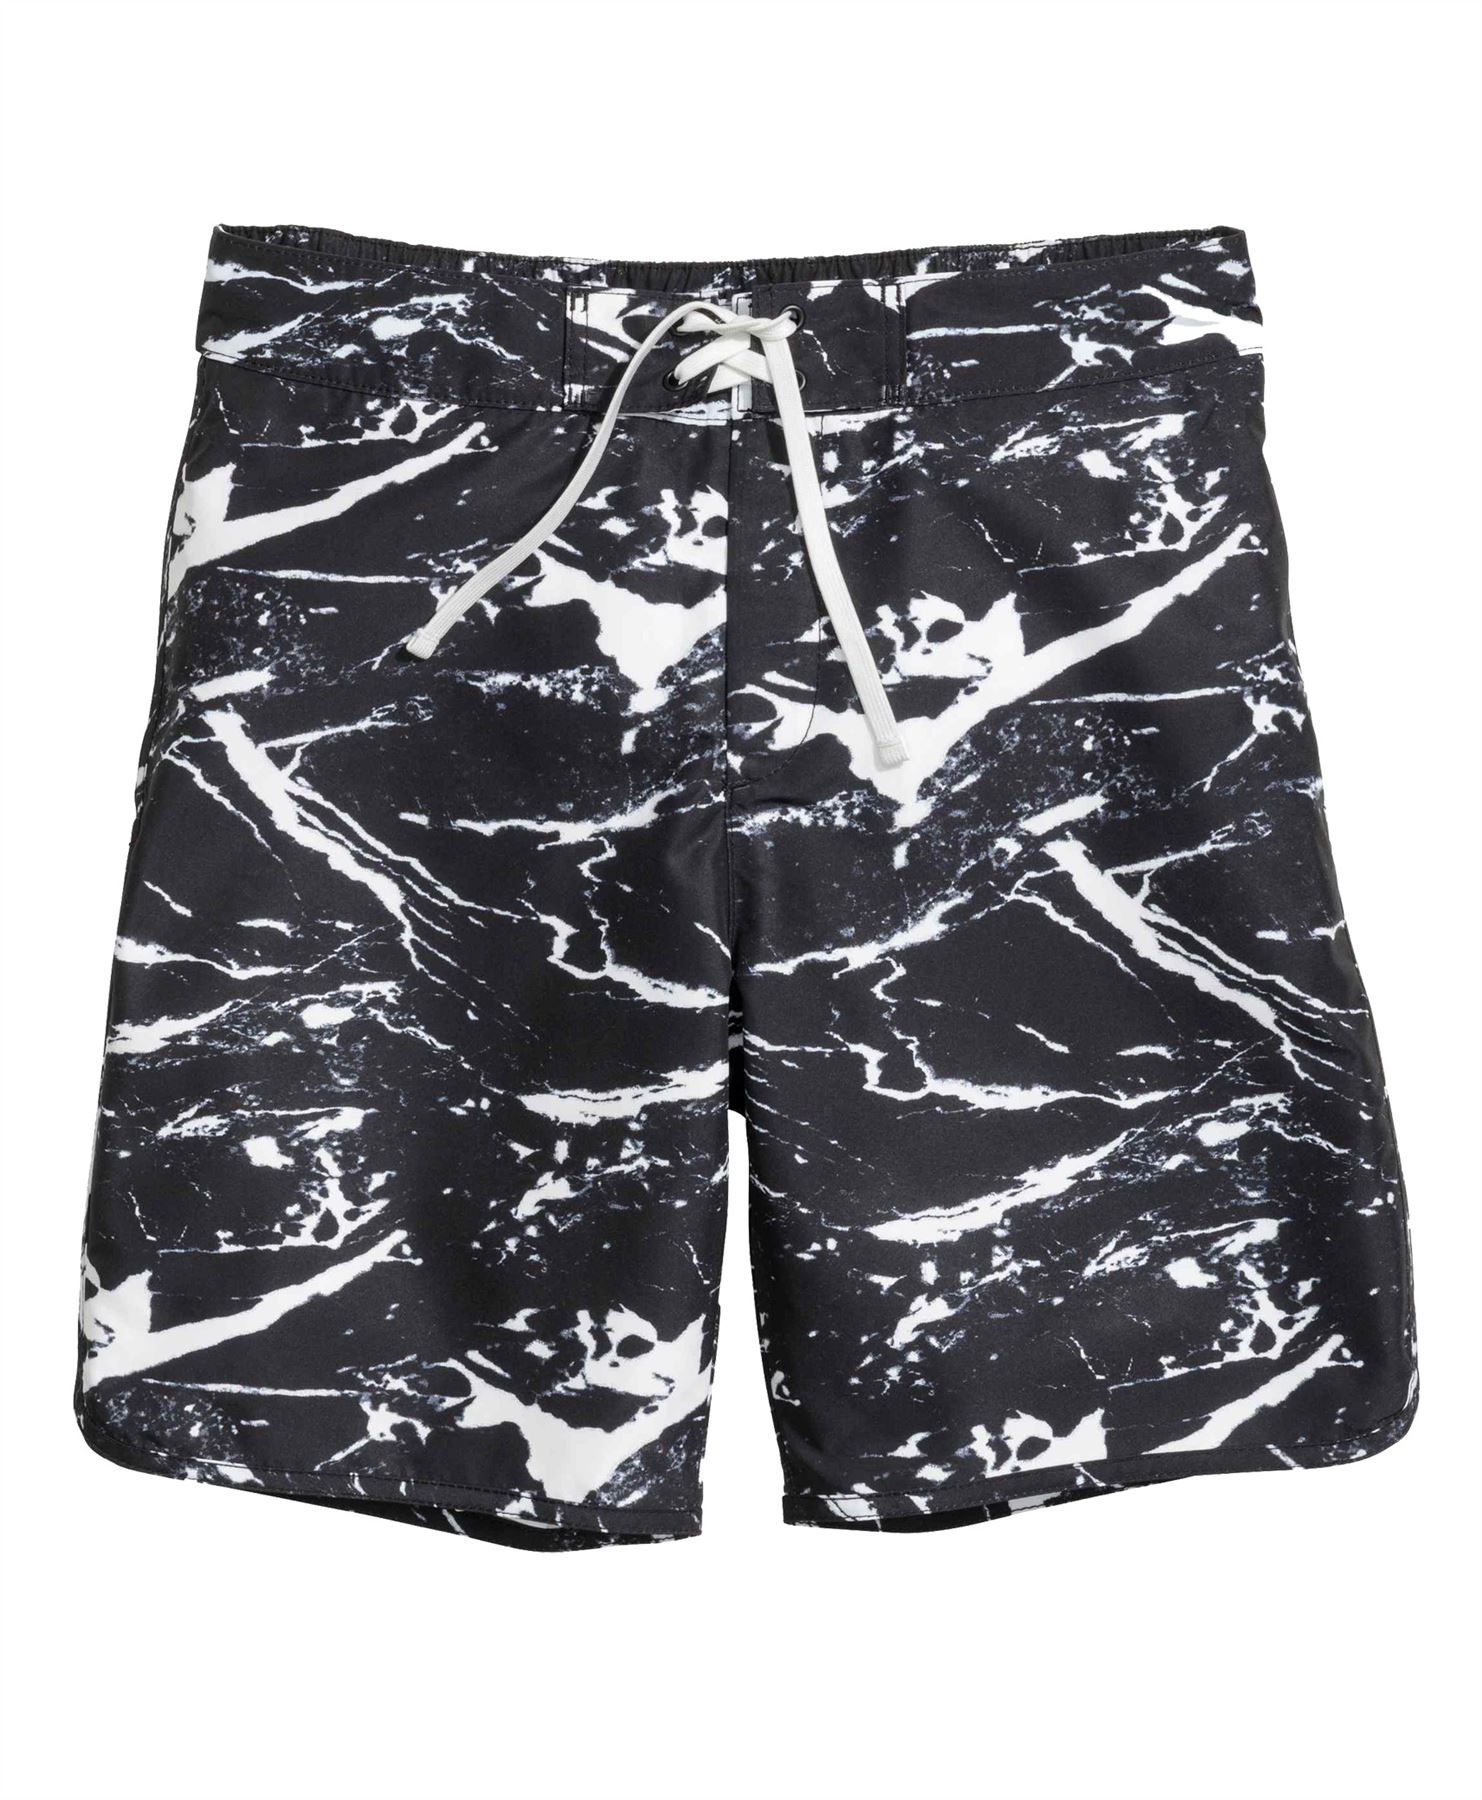 H&m Online Questionnaire Mens Ex H Andm Printed Plain Swimming Shorts Summer Surf